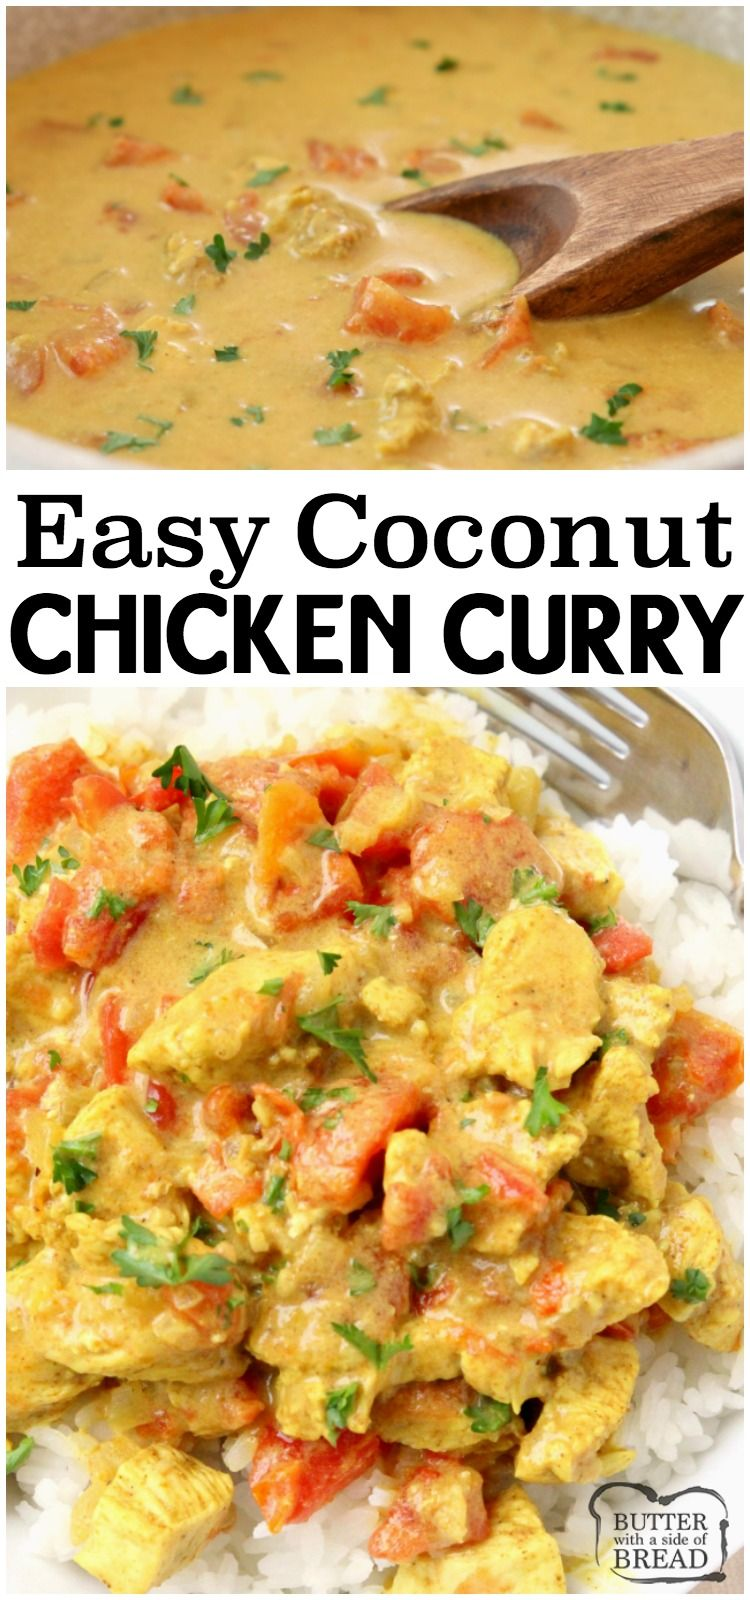 Coconut Chicken Curry recipe perfect for a busy weeknight meal! Simple, flavorful and healthy 20-minute chicken dinner for anyone who loves a mild chicken curry. Our Coconut Curry Chicken recipe uses diced chicken, tomatoes, coconut milk and just enough curry to add flavor, but not make it too spicy. #chicken #dinner #curry #coconut #chickencurry #food #recipe from BUTTER WITH A SIDE OF BREAD #simplehealthydinner